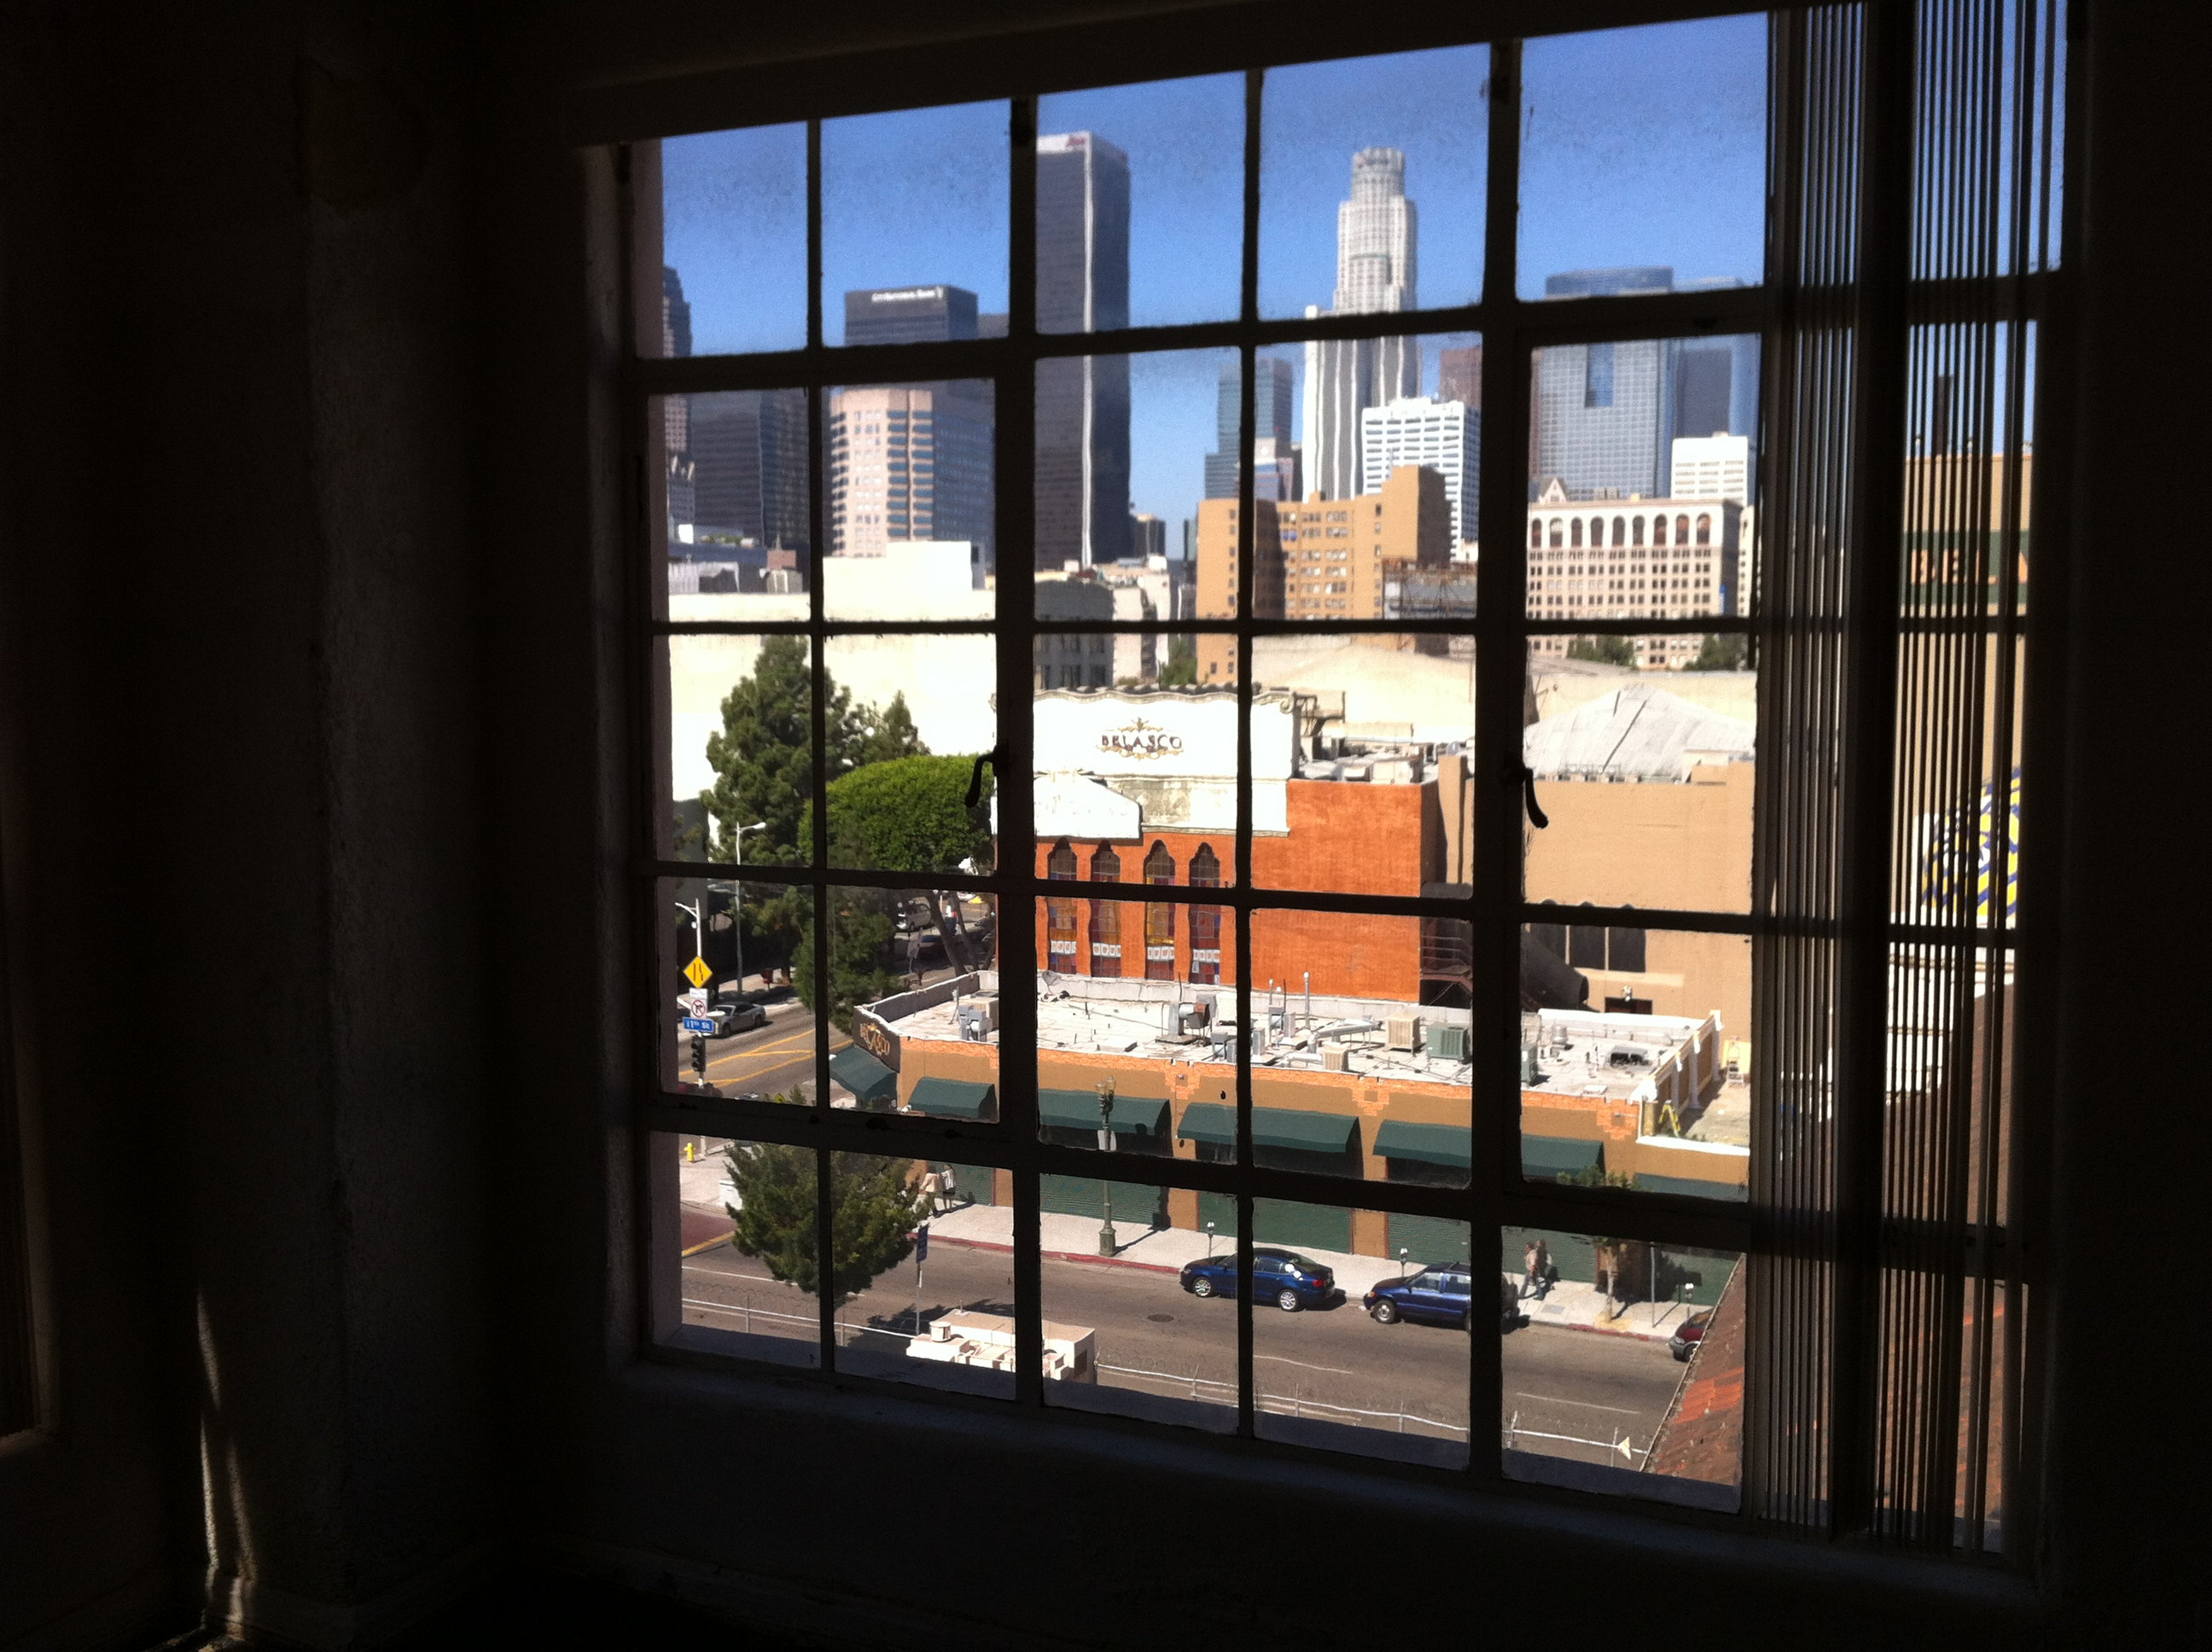 ... Loft Apartment Window City View Los Angeles Filming